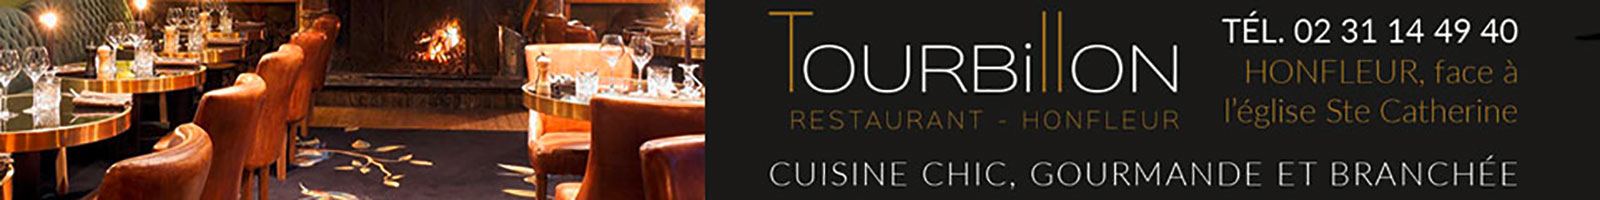 Restaurant Tourbillon